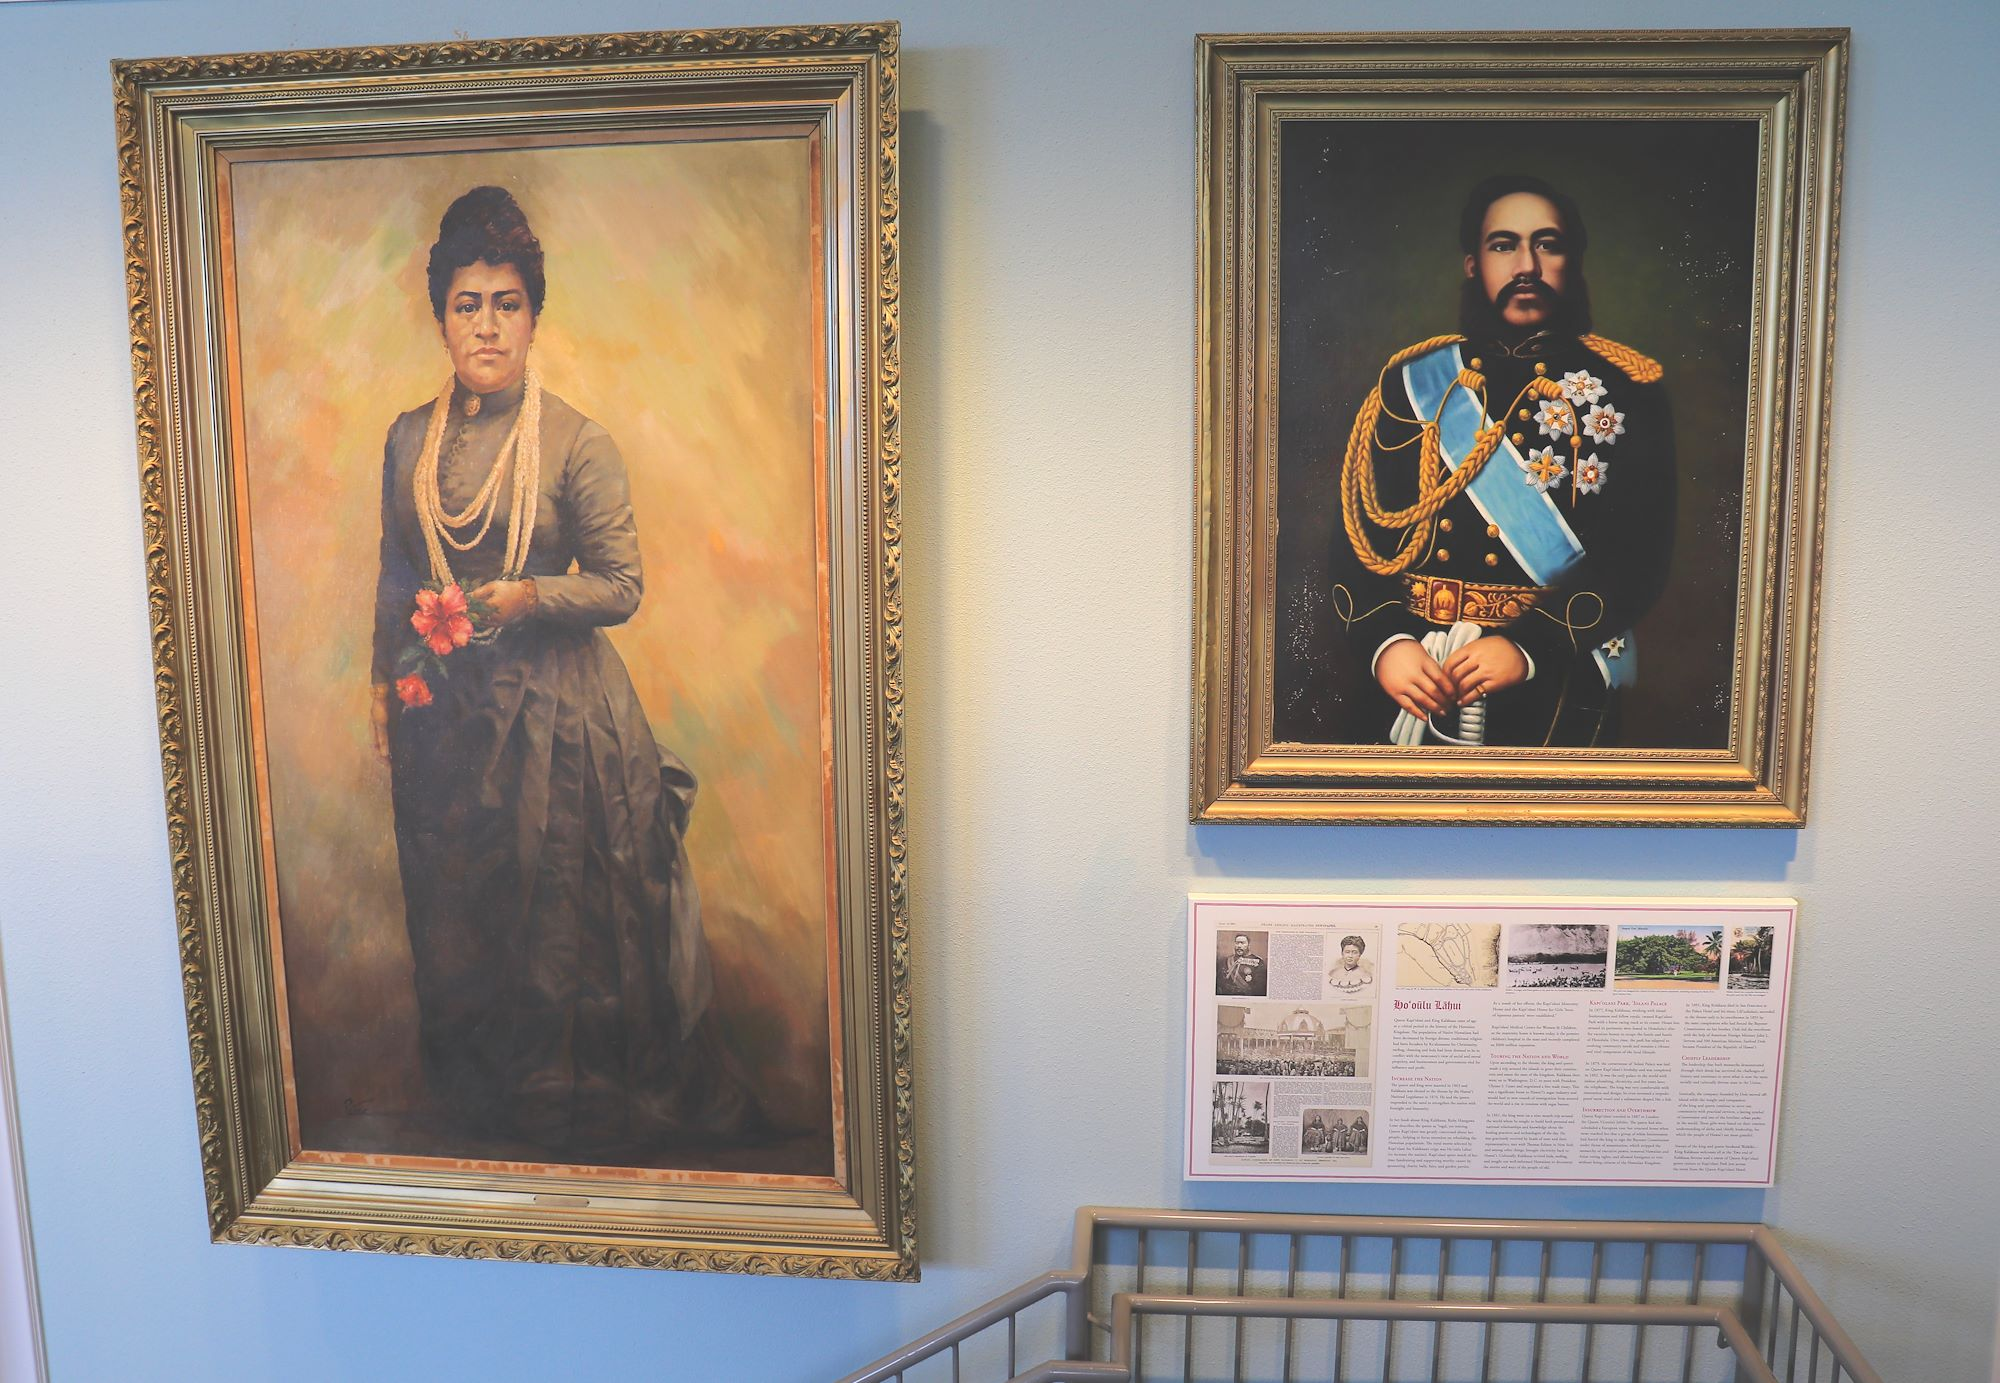 Image of art on wall at queen kapiolani hotel